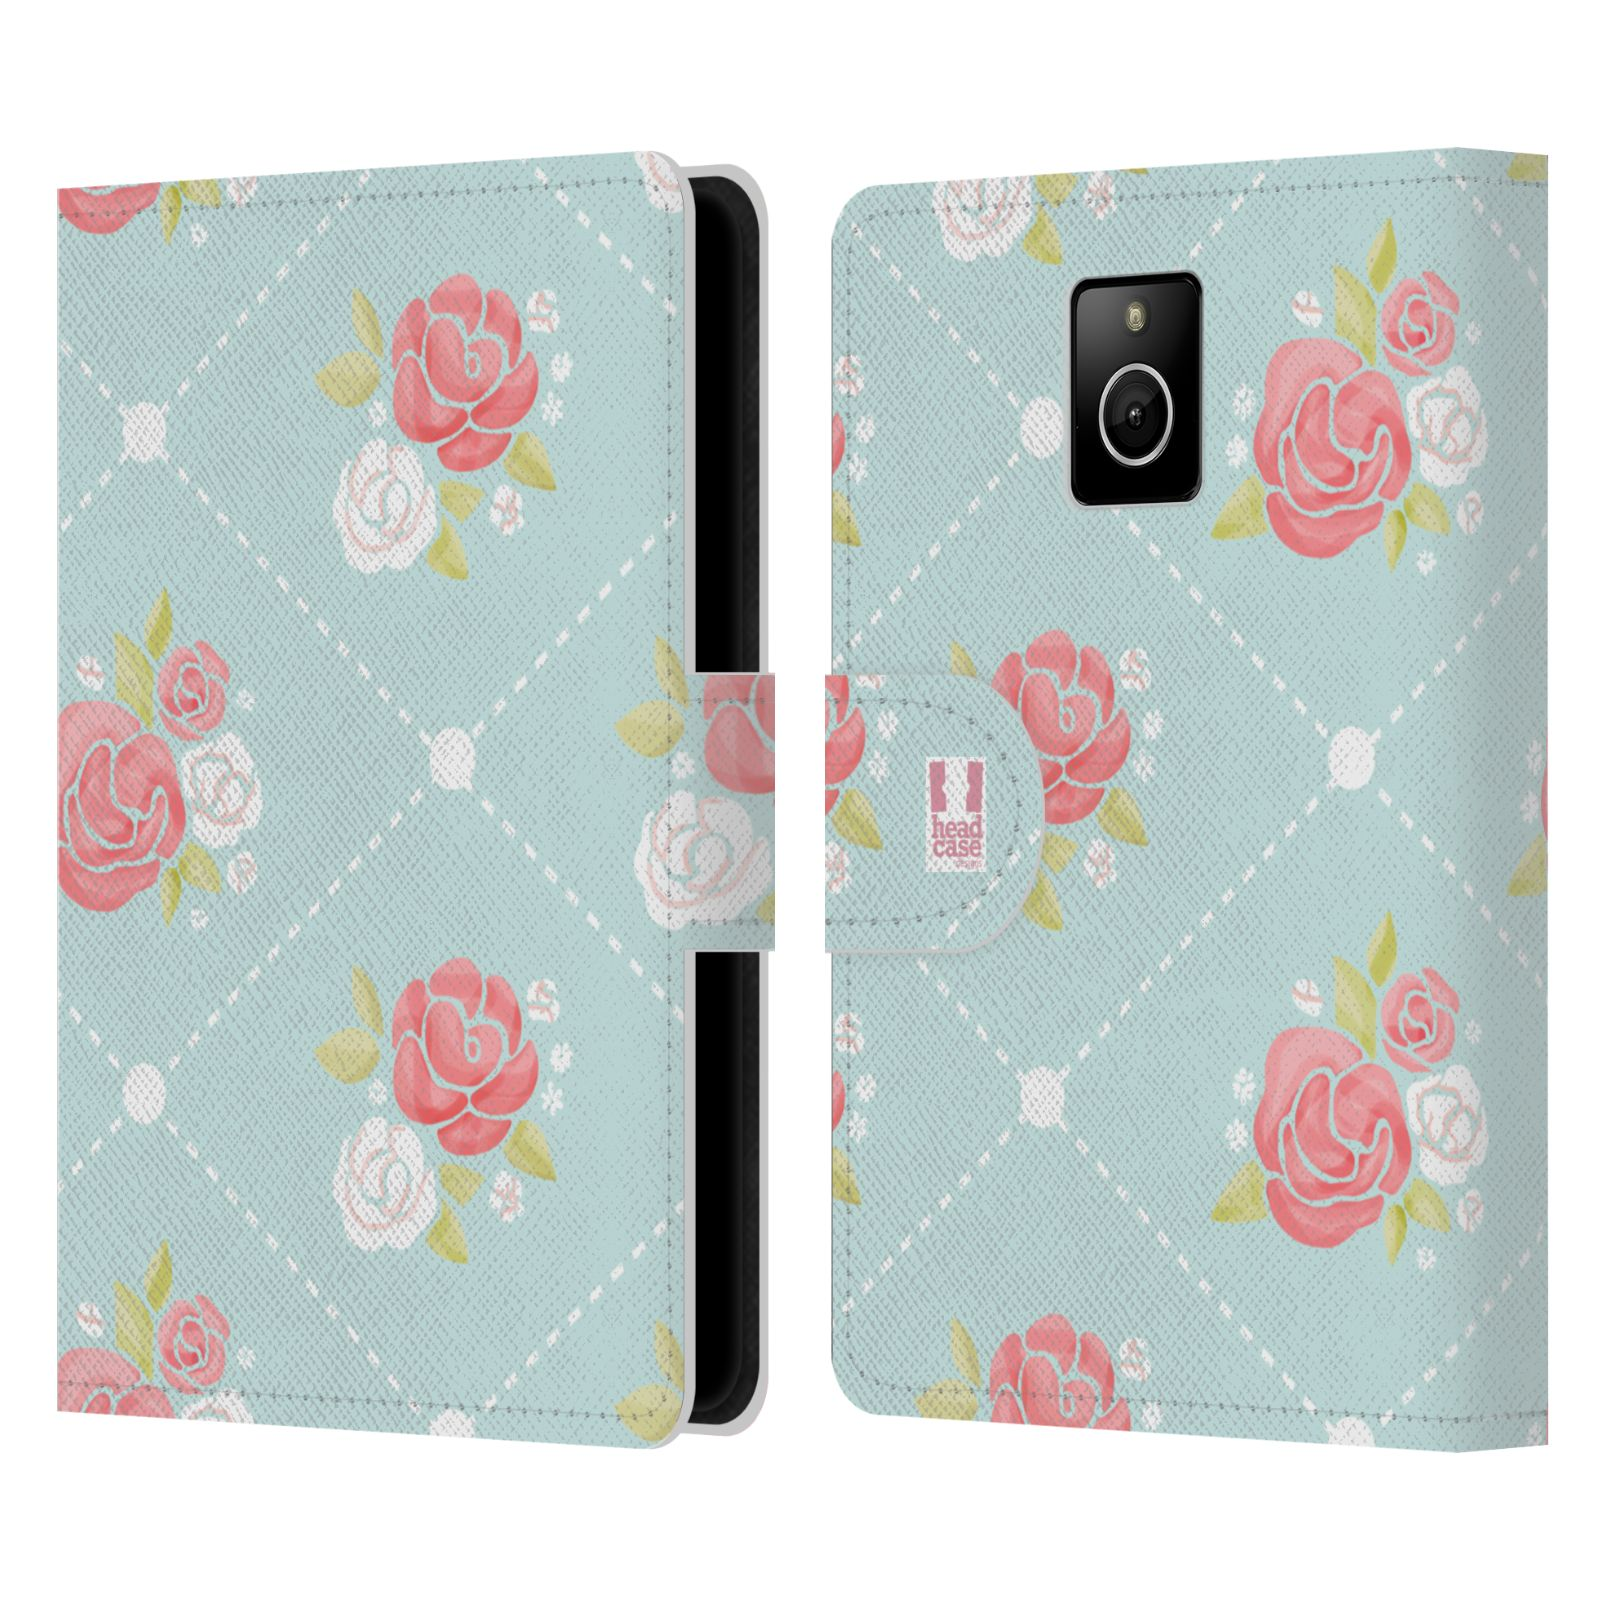 Book Cover Black Berry : Head case designs french leather book wallet cover